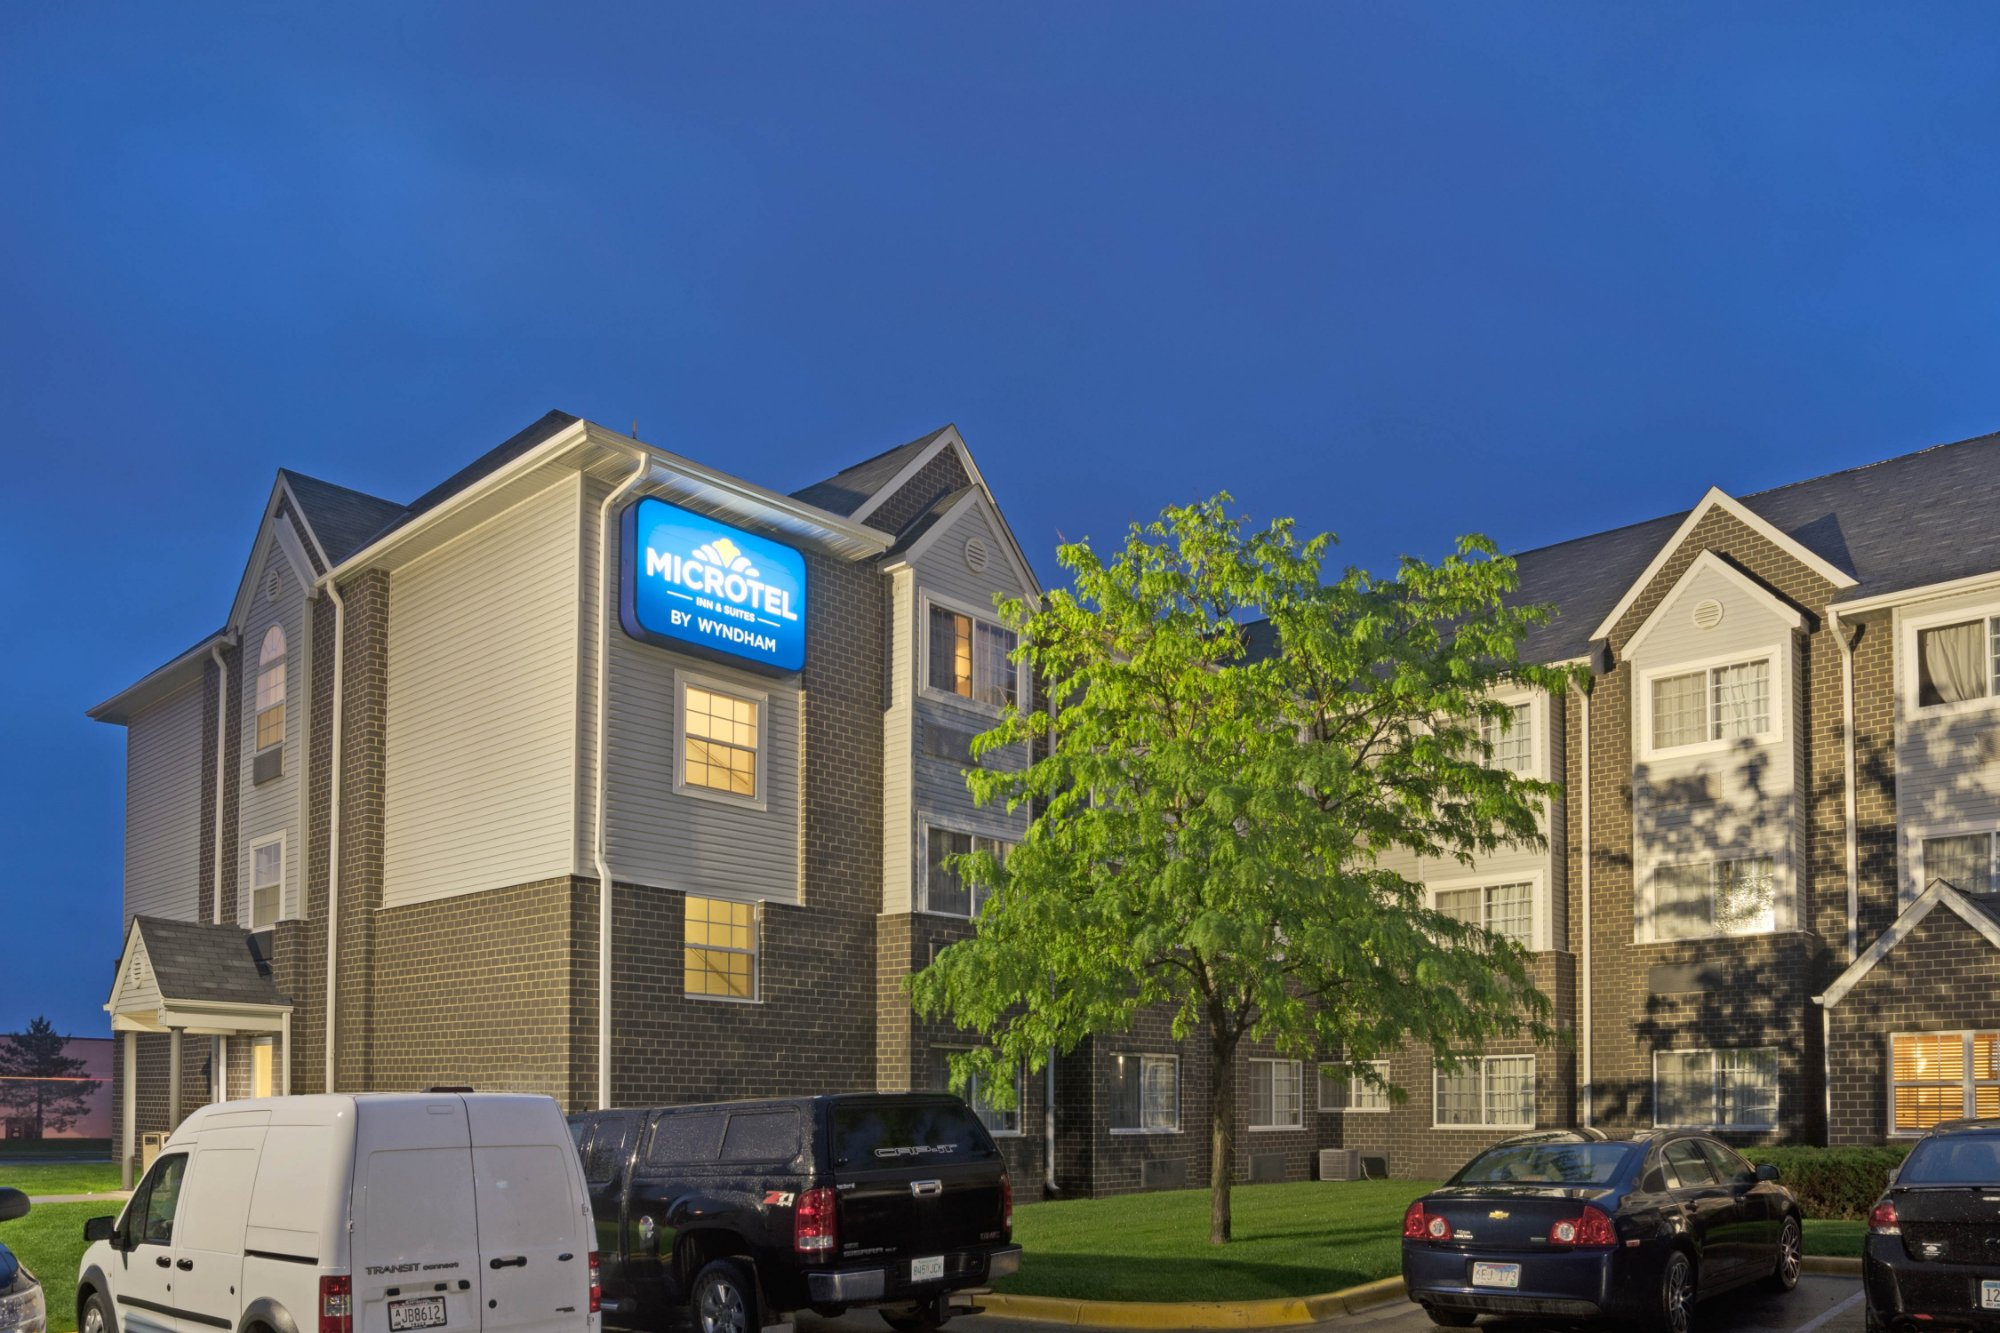 Microtel Inn & Suites by Wyndham Eagan/St Paul